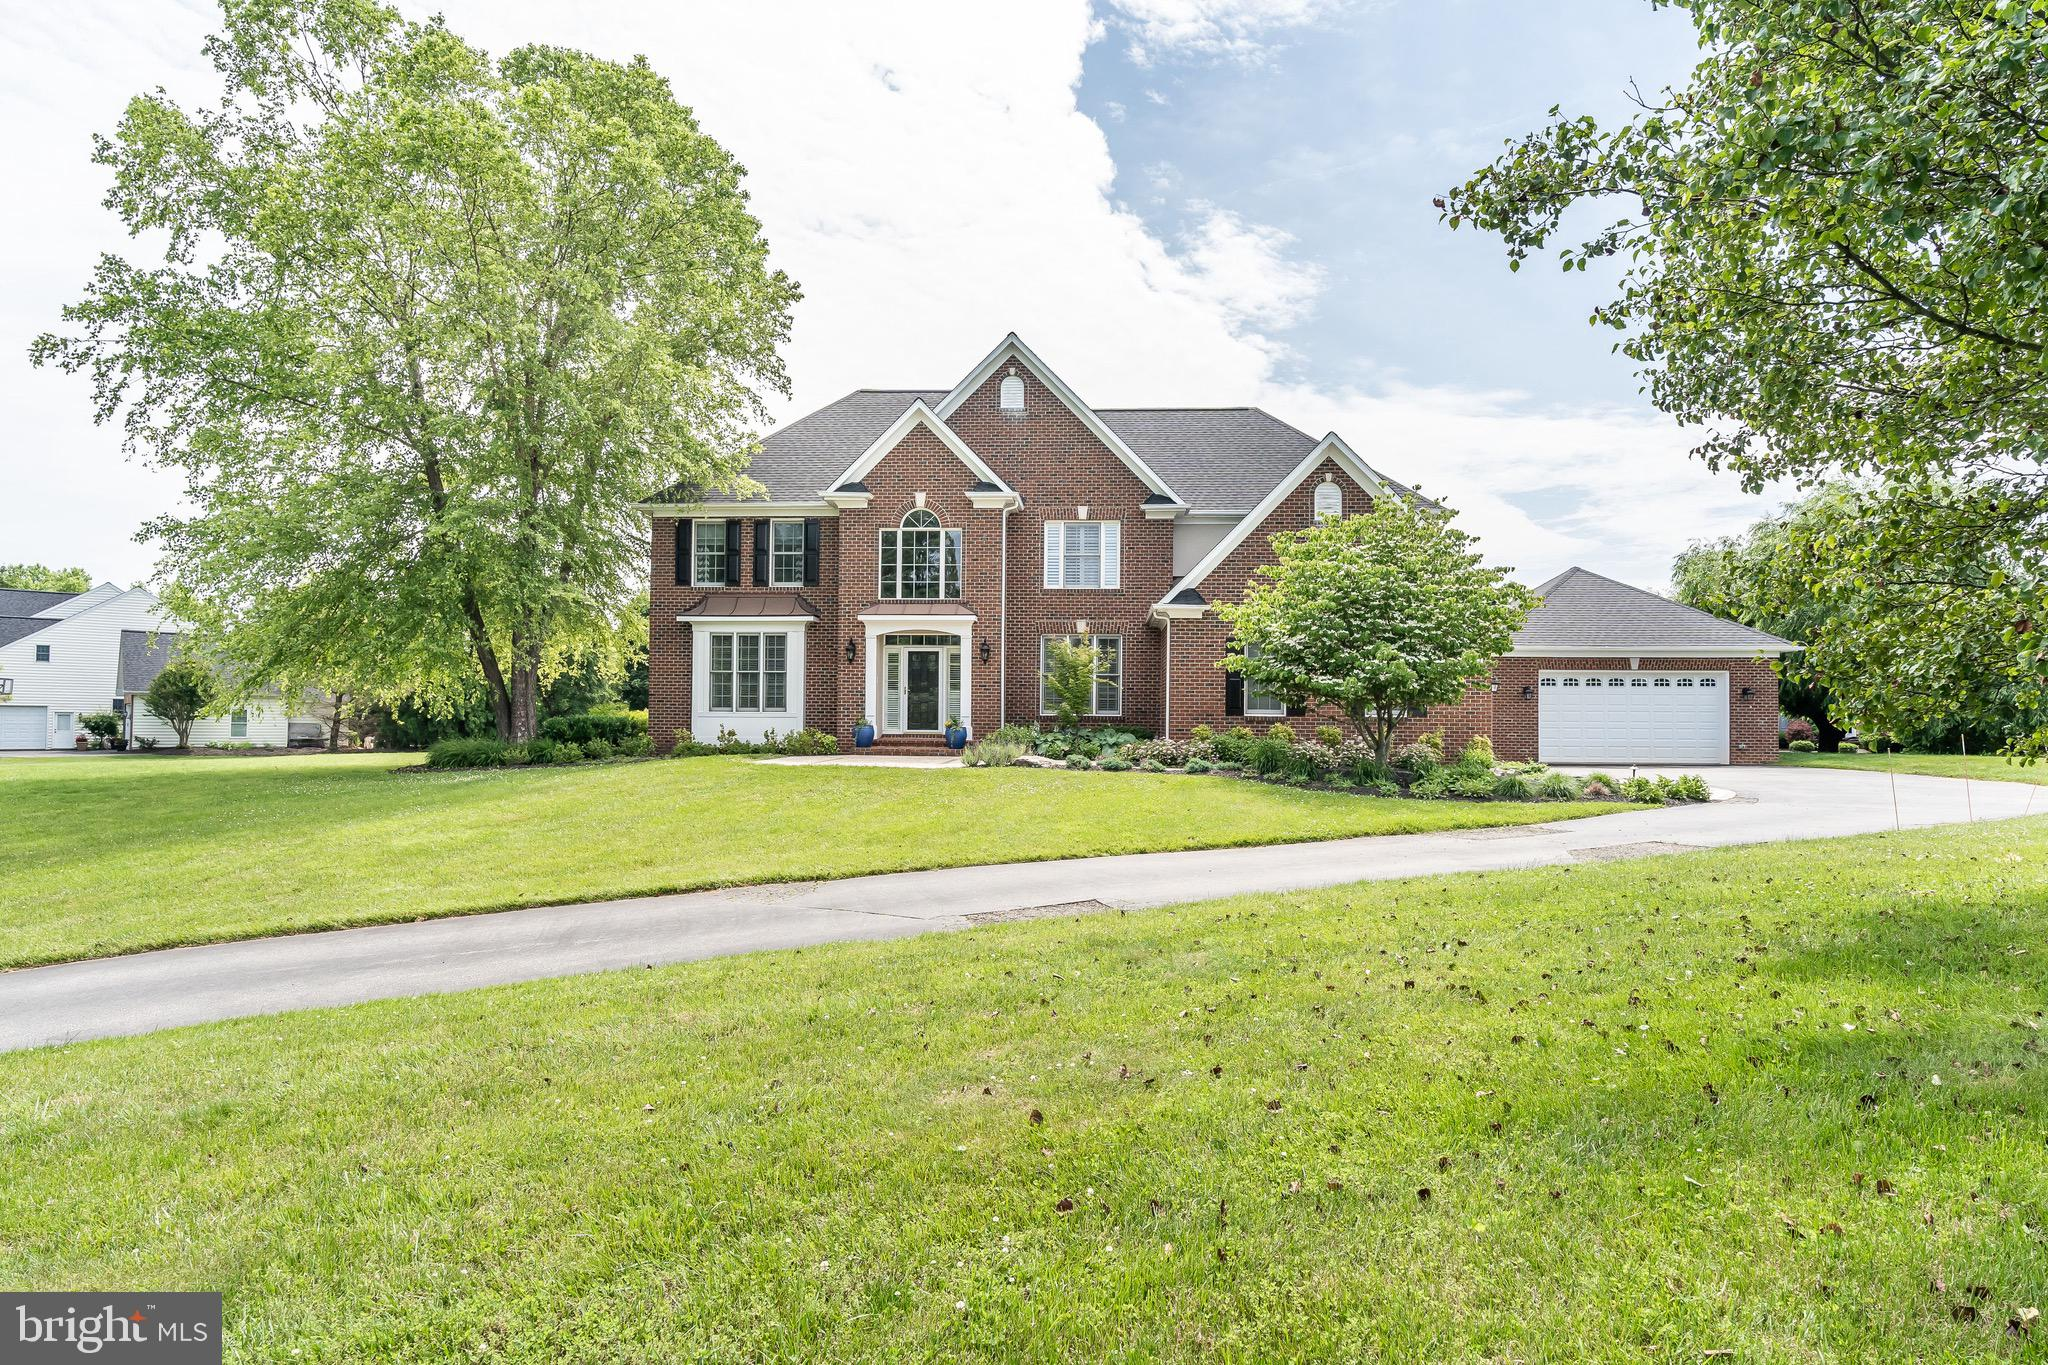 3141 FOX VALLEY DRIVE, WEST FRIENDSHIP, MD 21794